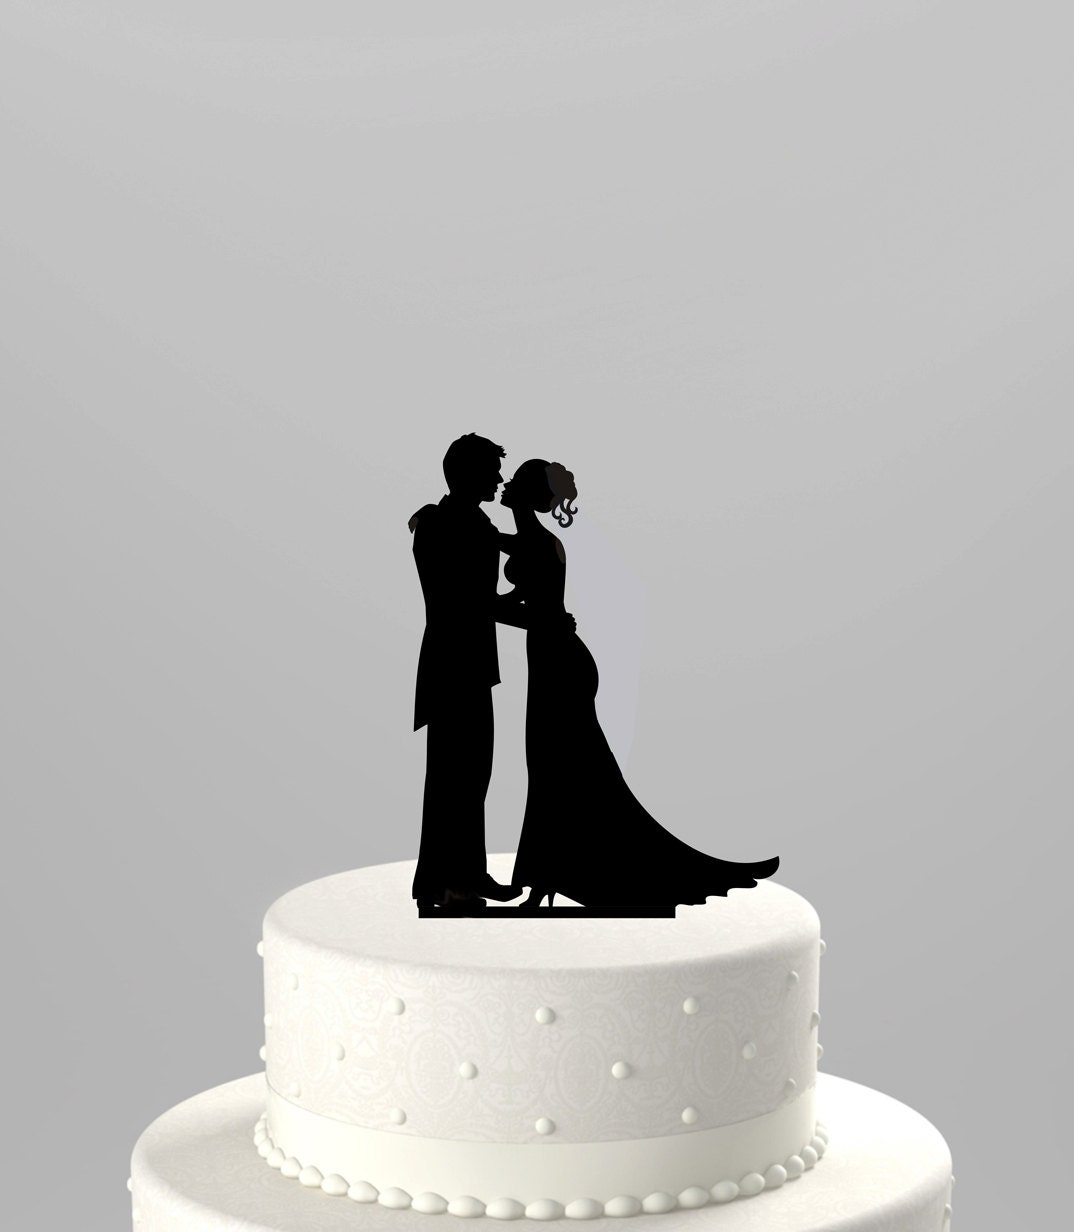 Cake Toppers Uk Next Day Delivery : FREE SHIPPING Ships Next Day Wedding Cake Topper